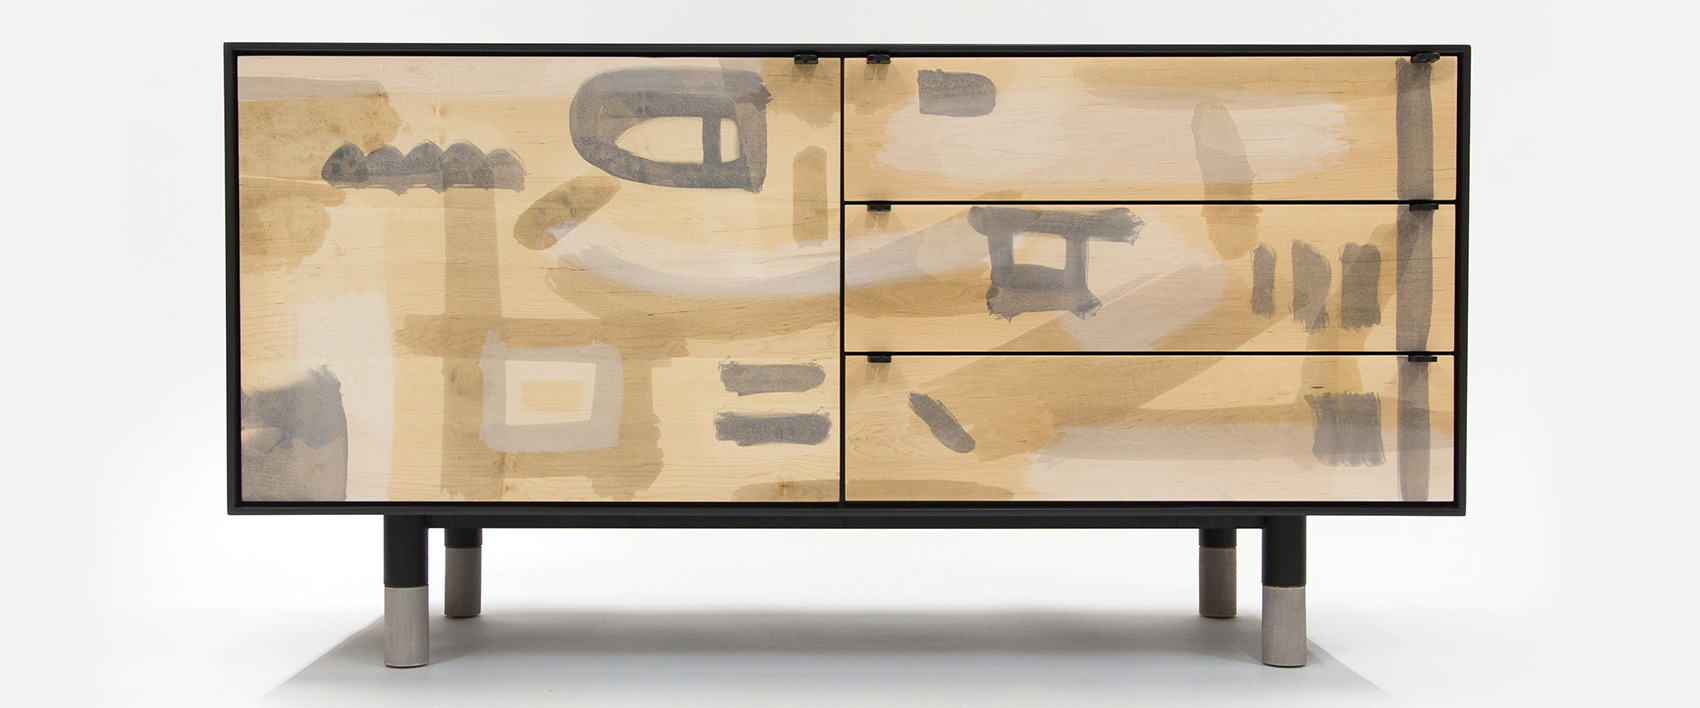 bespoke furnitures make a statement with a hand-painted piece of furniture.  1_brisesdeprintemps_ninahelms GMWEPSQ